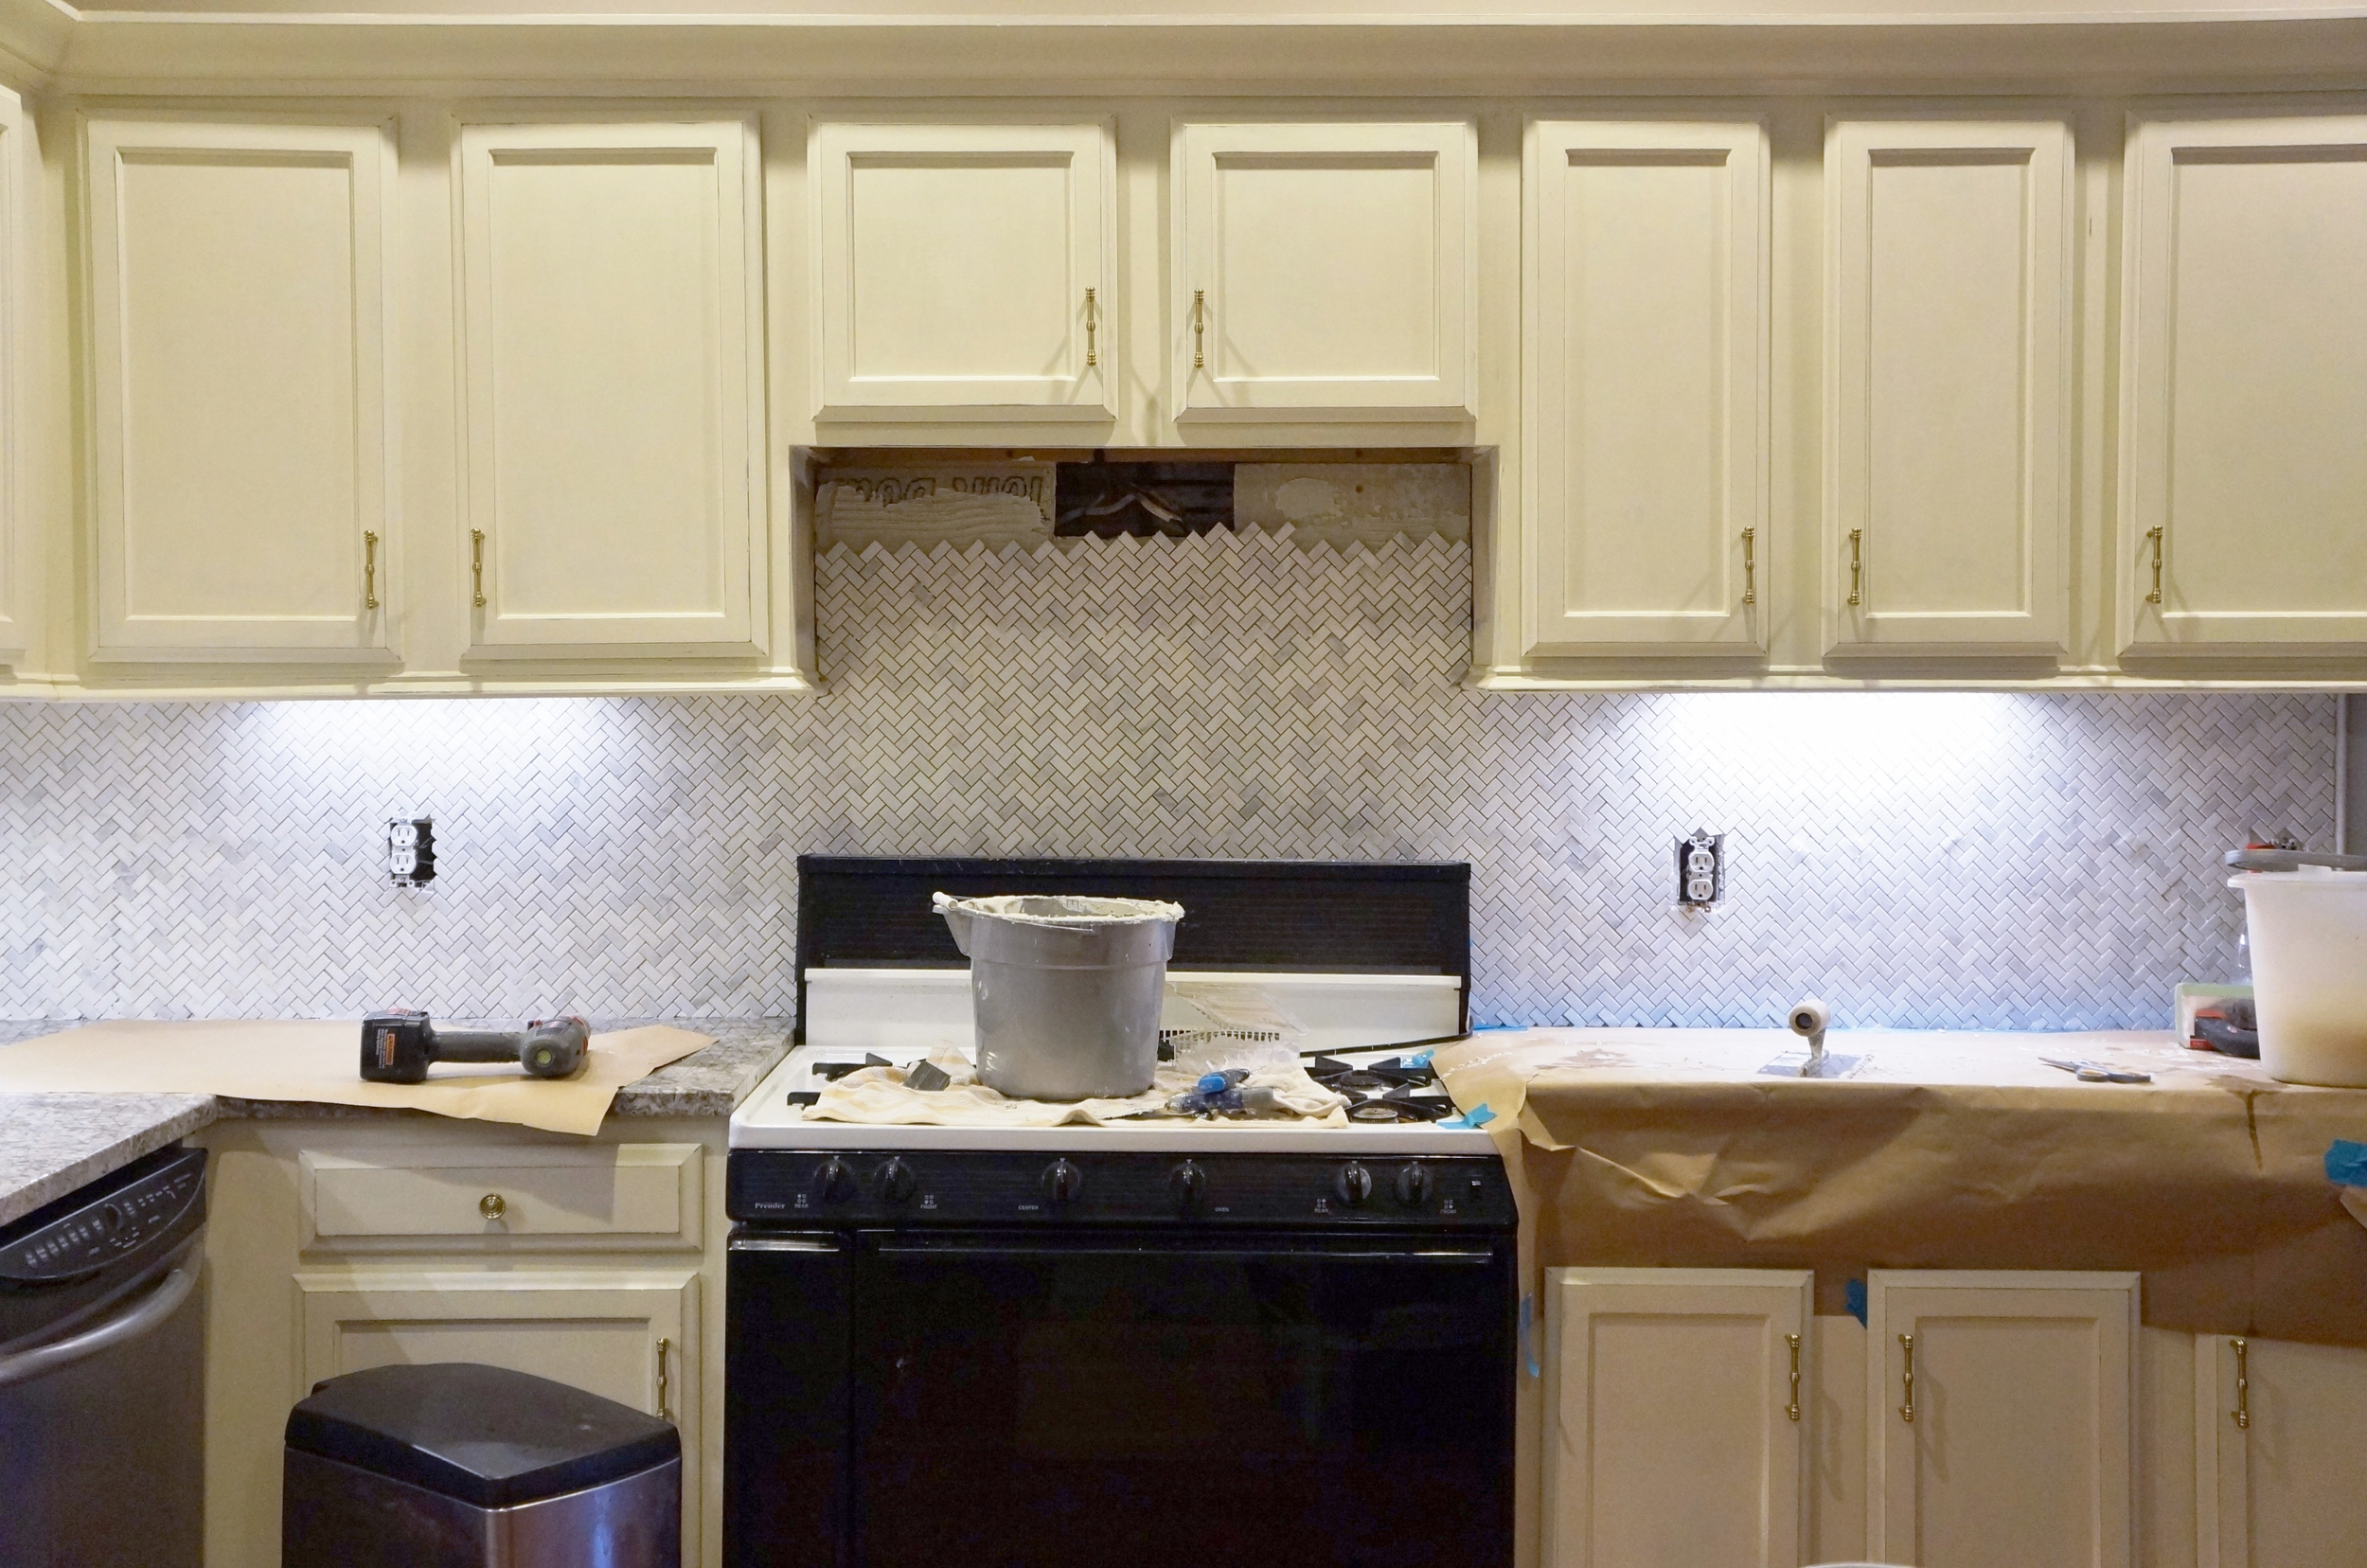 One side complete, leaving room for the new range hood